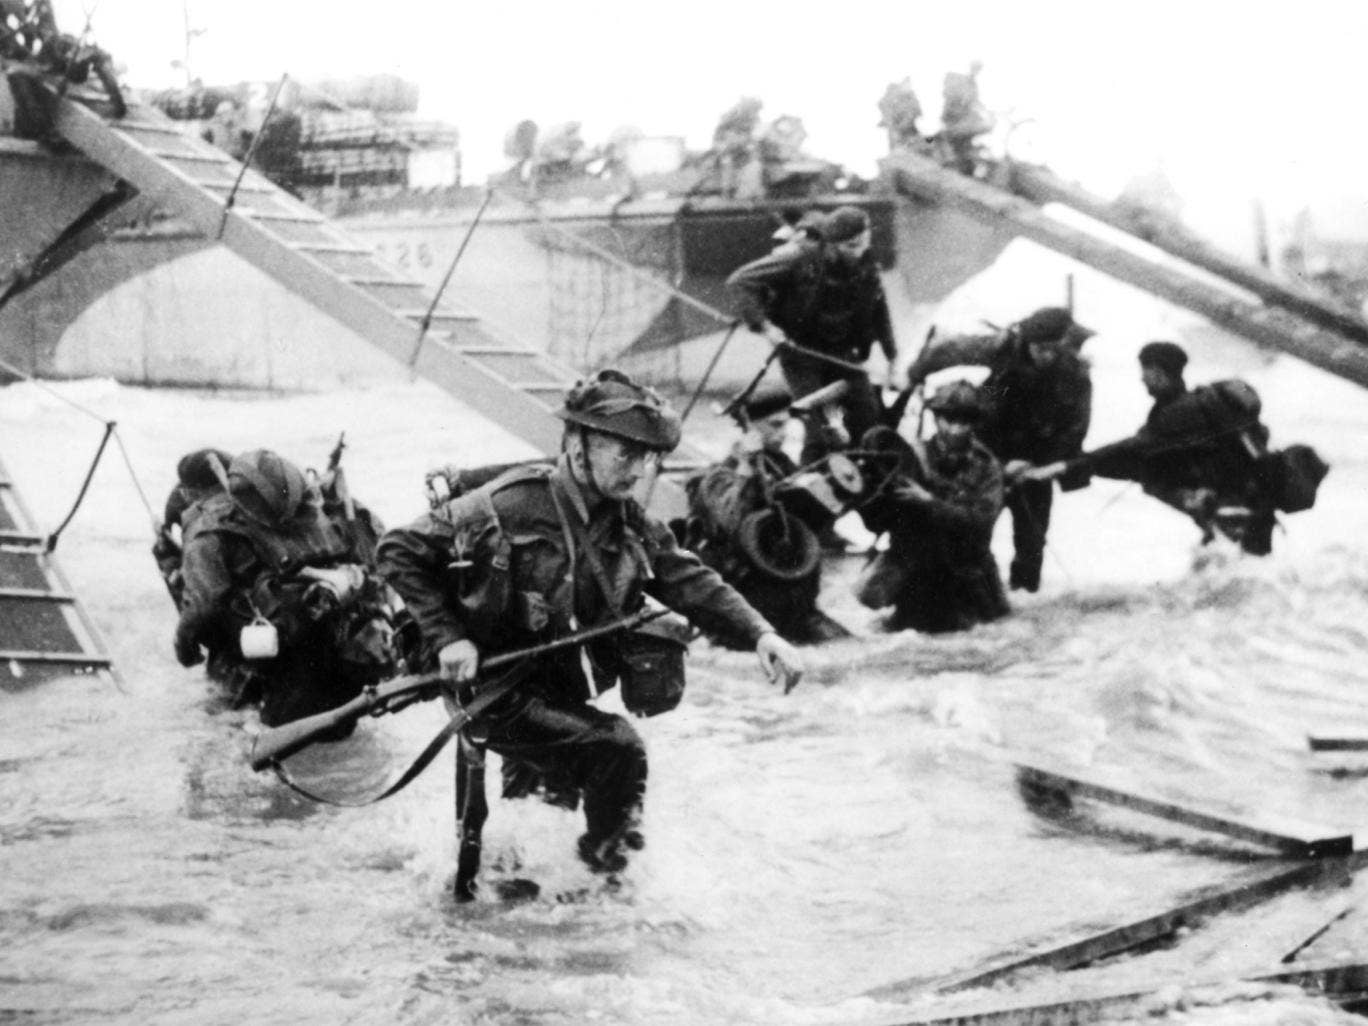 Troops from the 48th Royal Marines on Juno Beach, Normandy, during the D-Day landings on 6 June 1944